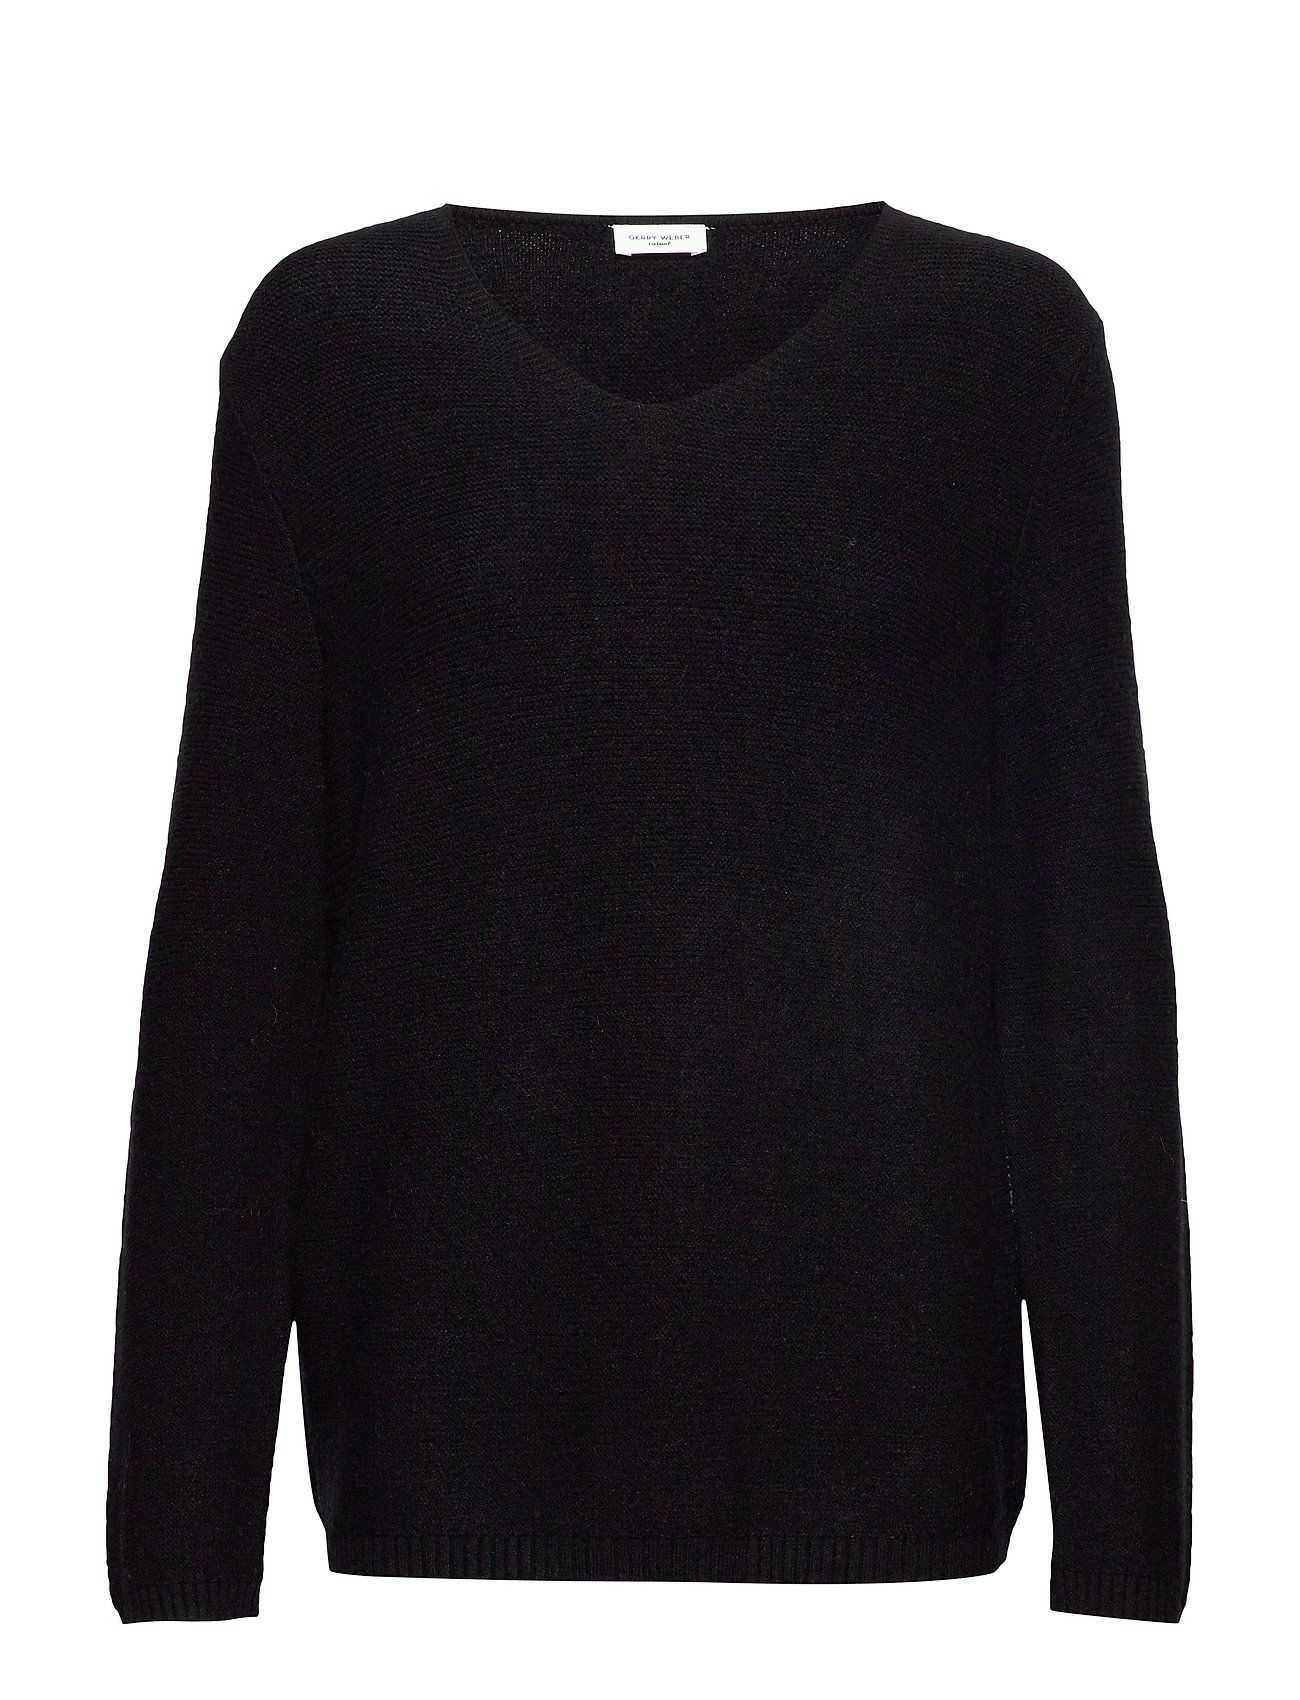 Gerry Weber Edition PULLOVER LONG-SLEEVE - BLACK